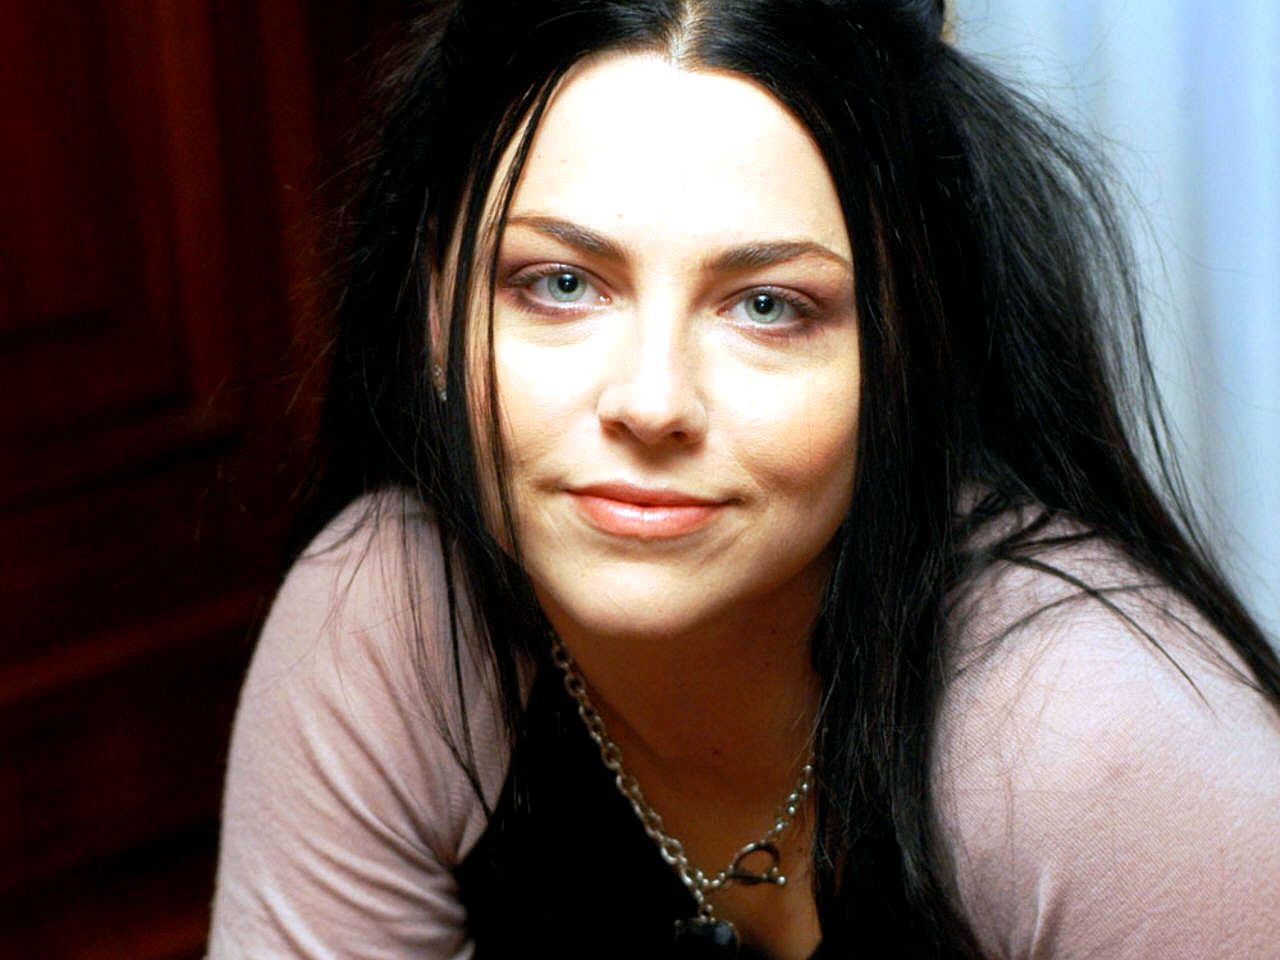 Amy Lee Res: 1280x960 / Size:119kb. Views: 100894